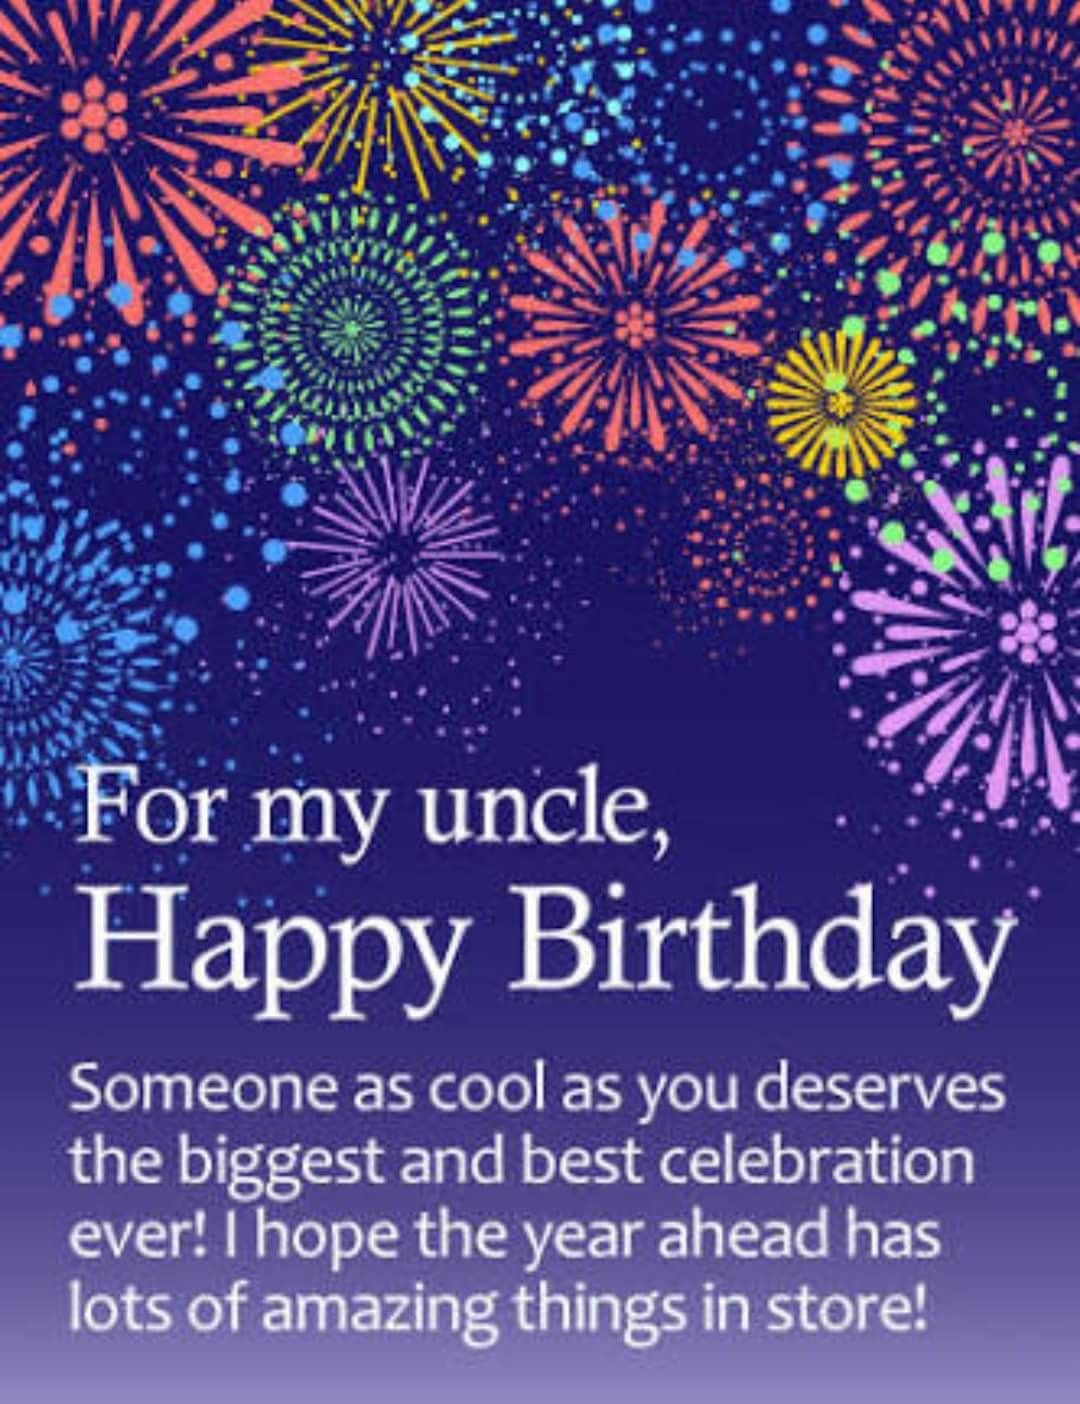 Happy Birthday Uncle Birthday Wishes For Uncle Happy Birthday Wishes Quotes Uncle Birthday Quotes